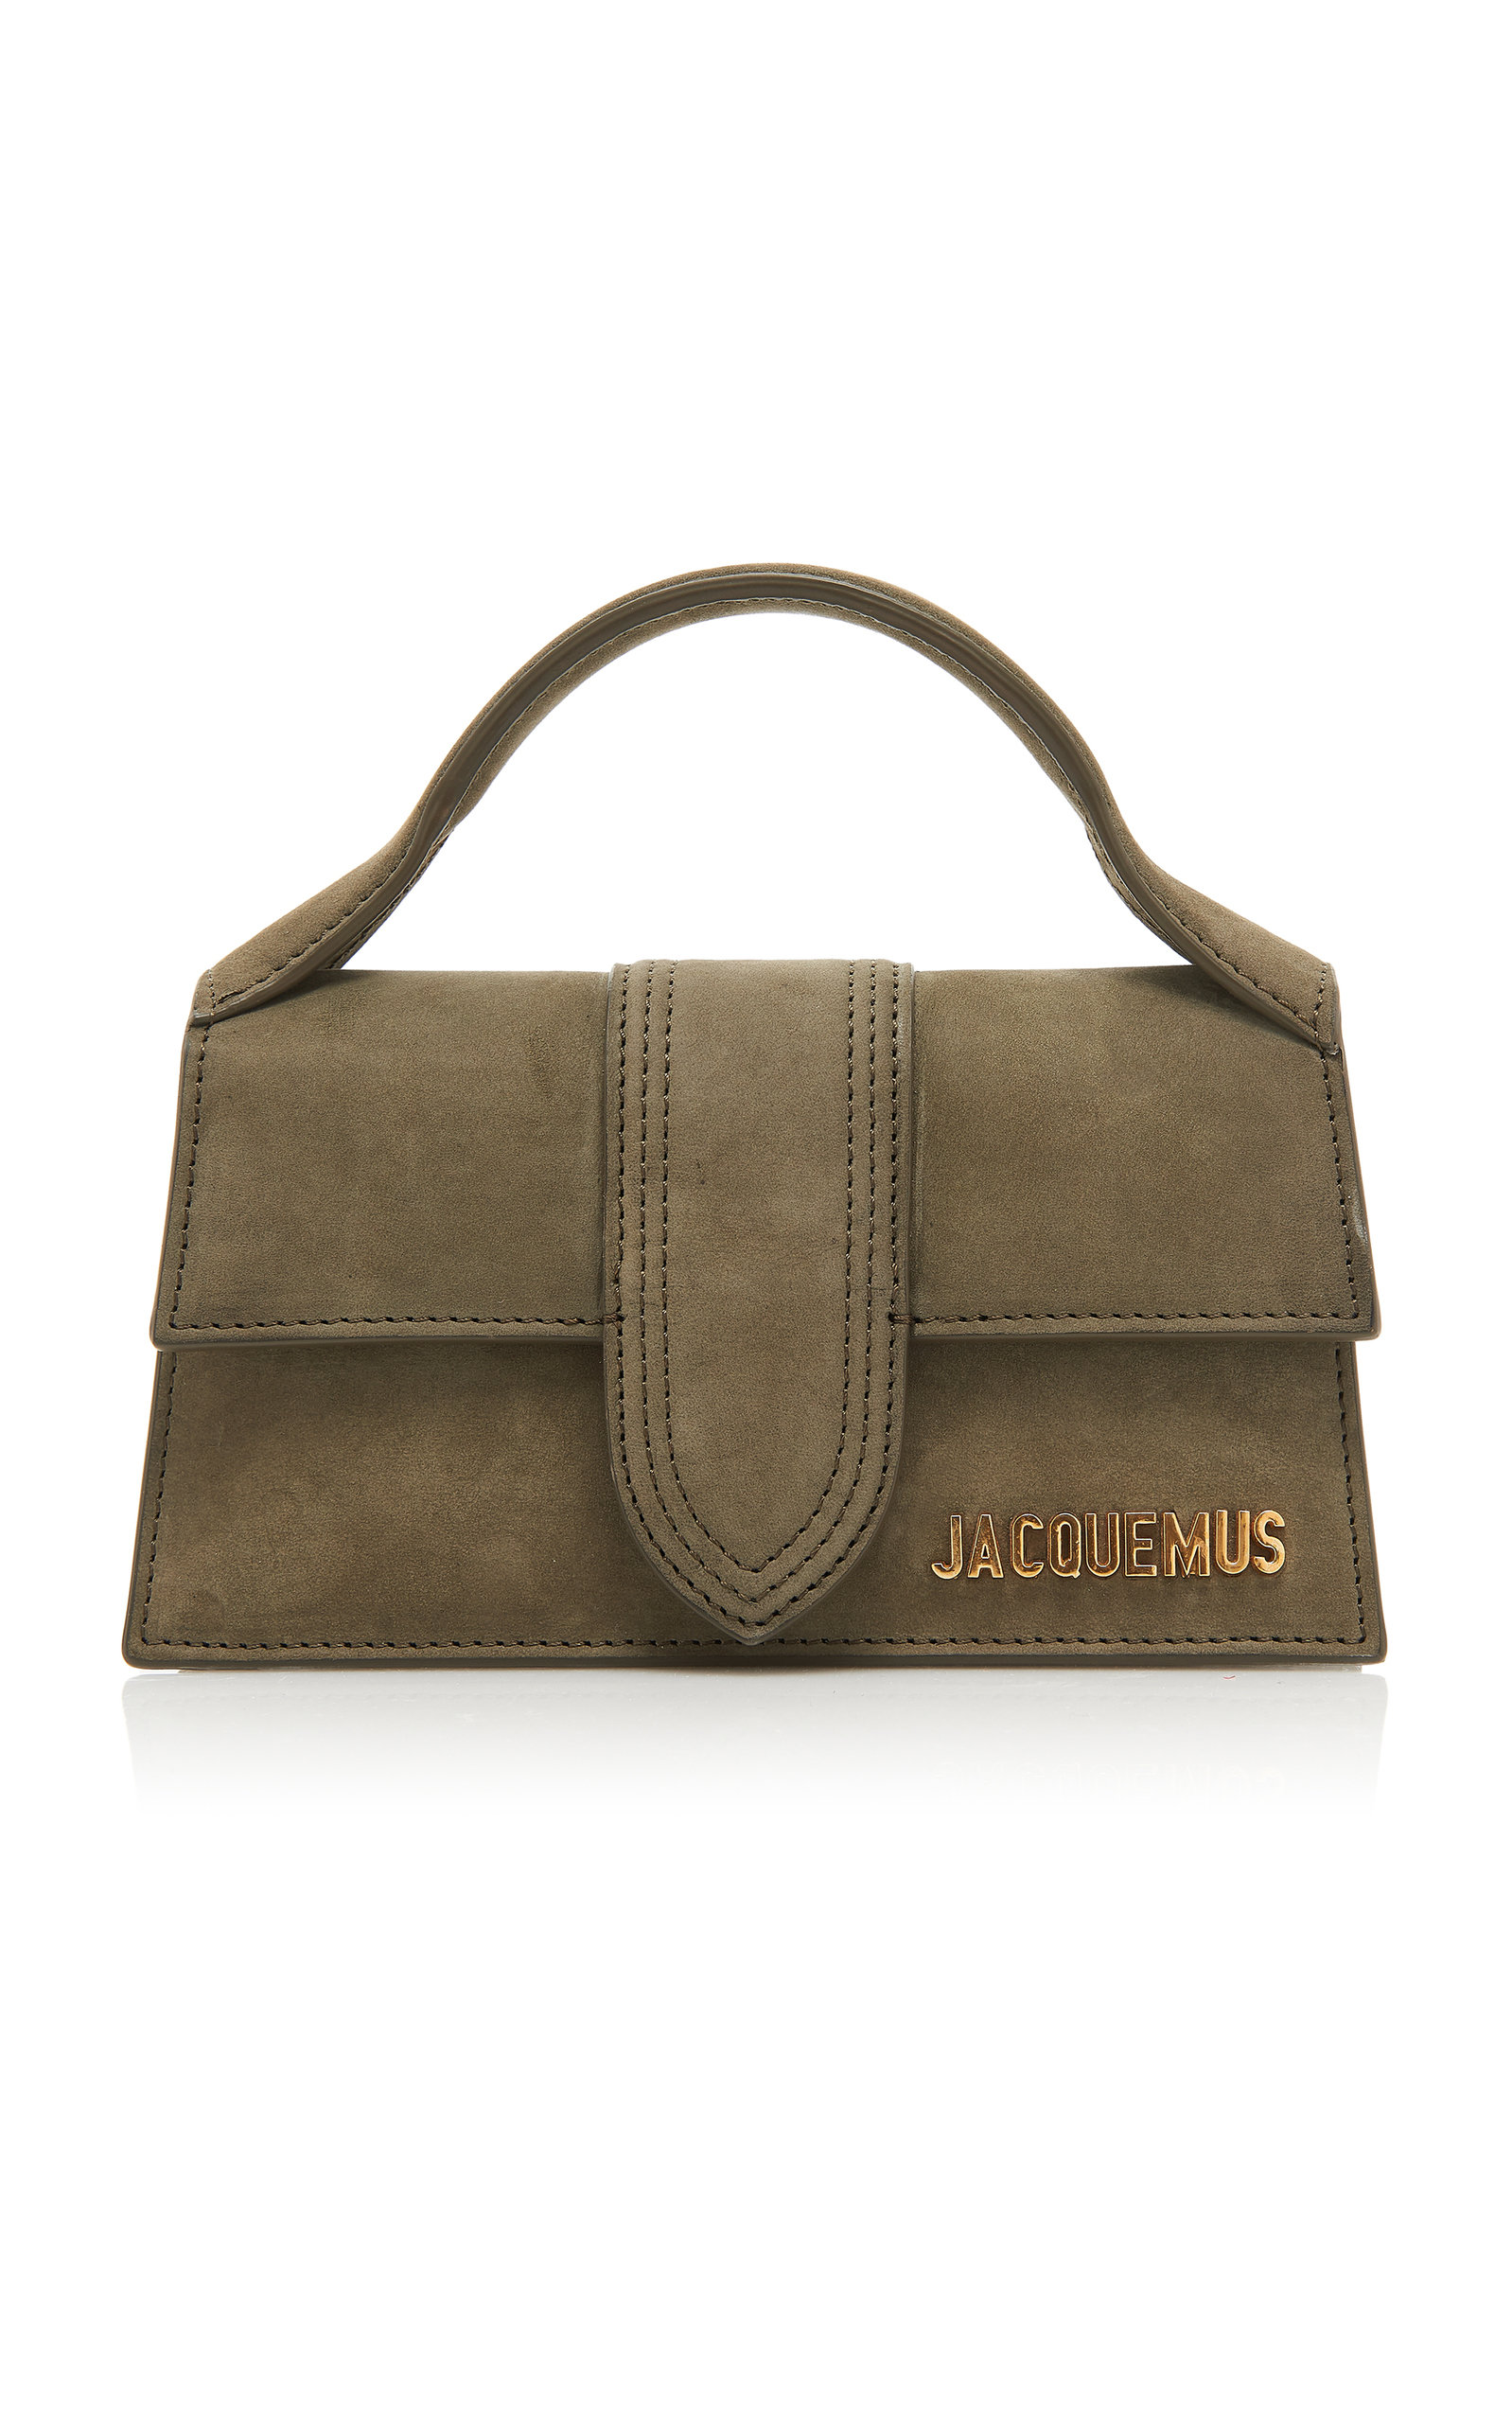 Jacquemus LE BAMBINO SUEDE TOP HANDLE BAG